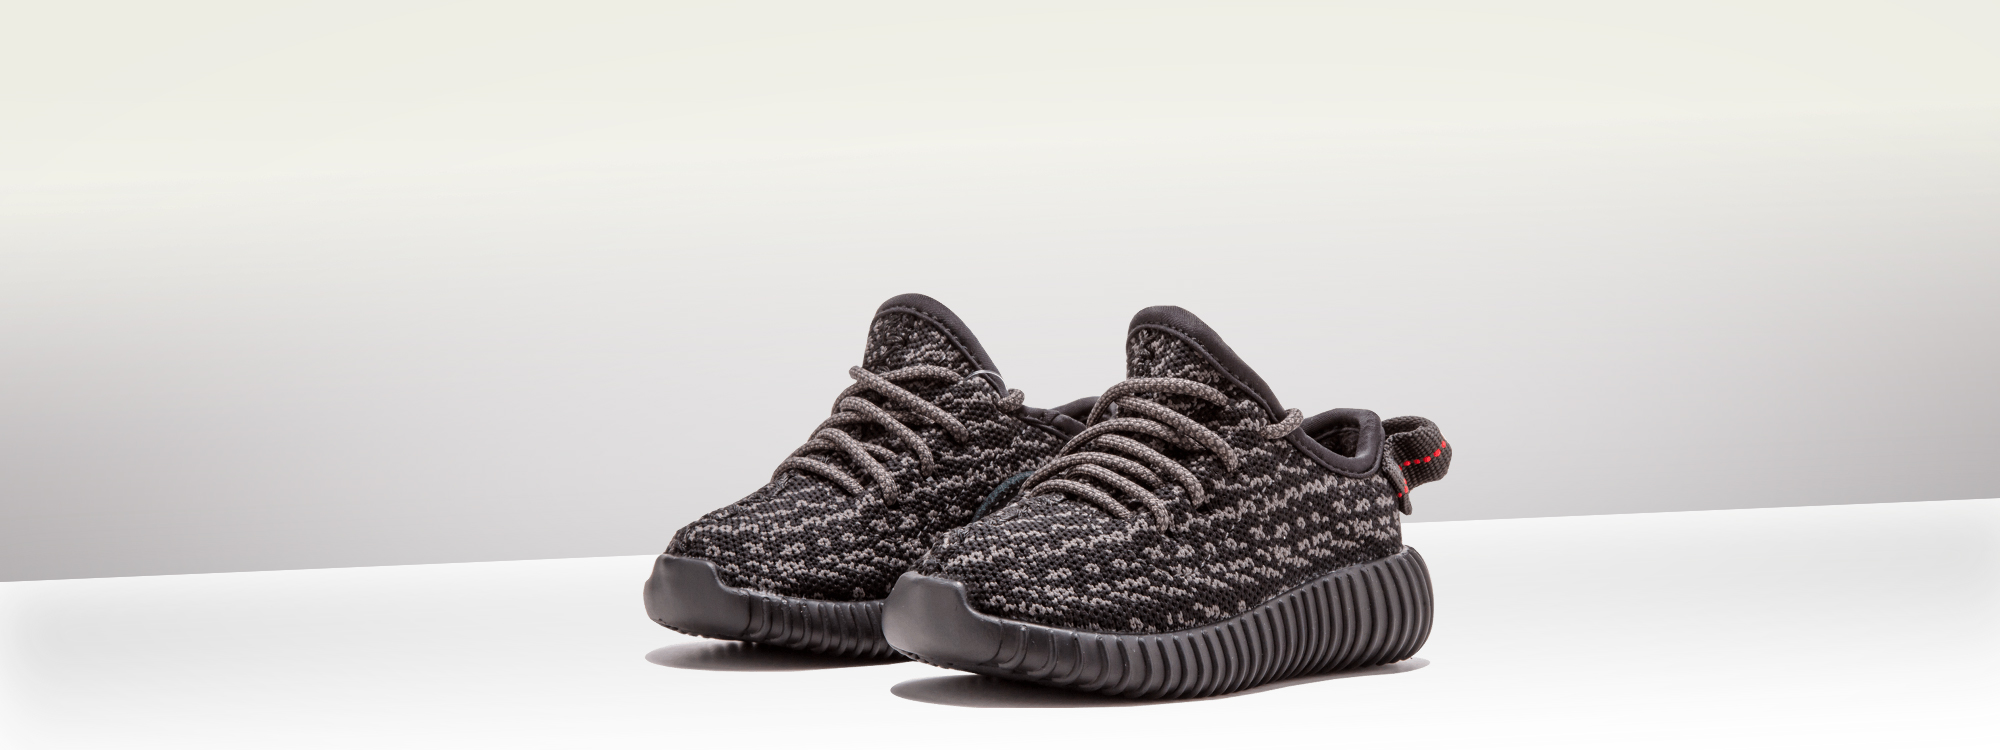 How to get New Adidas Yeezy Boost 350 INFANT Pirate Black shoes